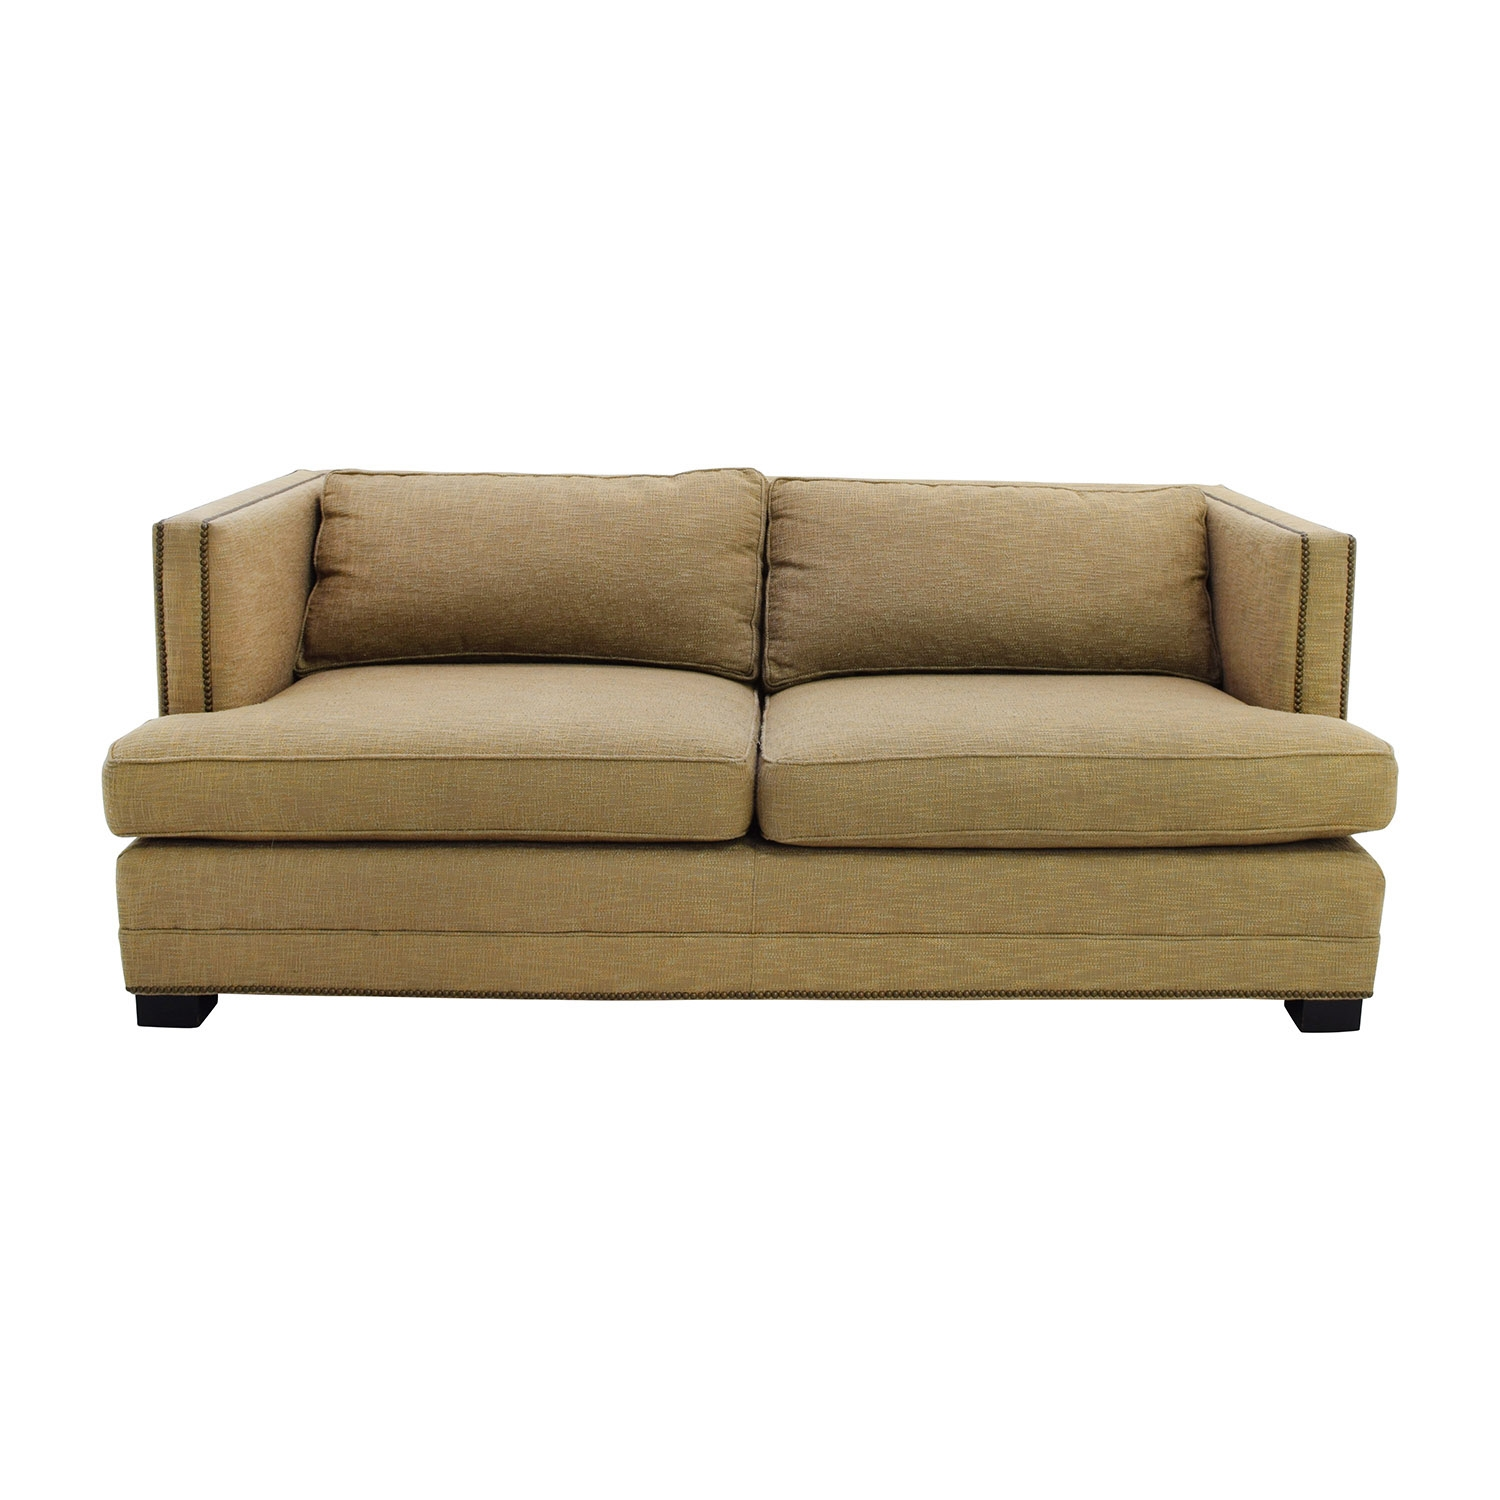 84 Off Thomas Alexander Thomas Alexander Classic Sofa Sofas Within Classic Sofas For Sale (Image 1 of 15)